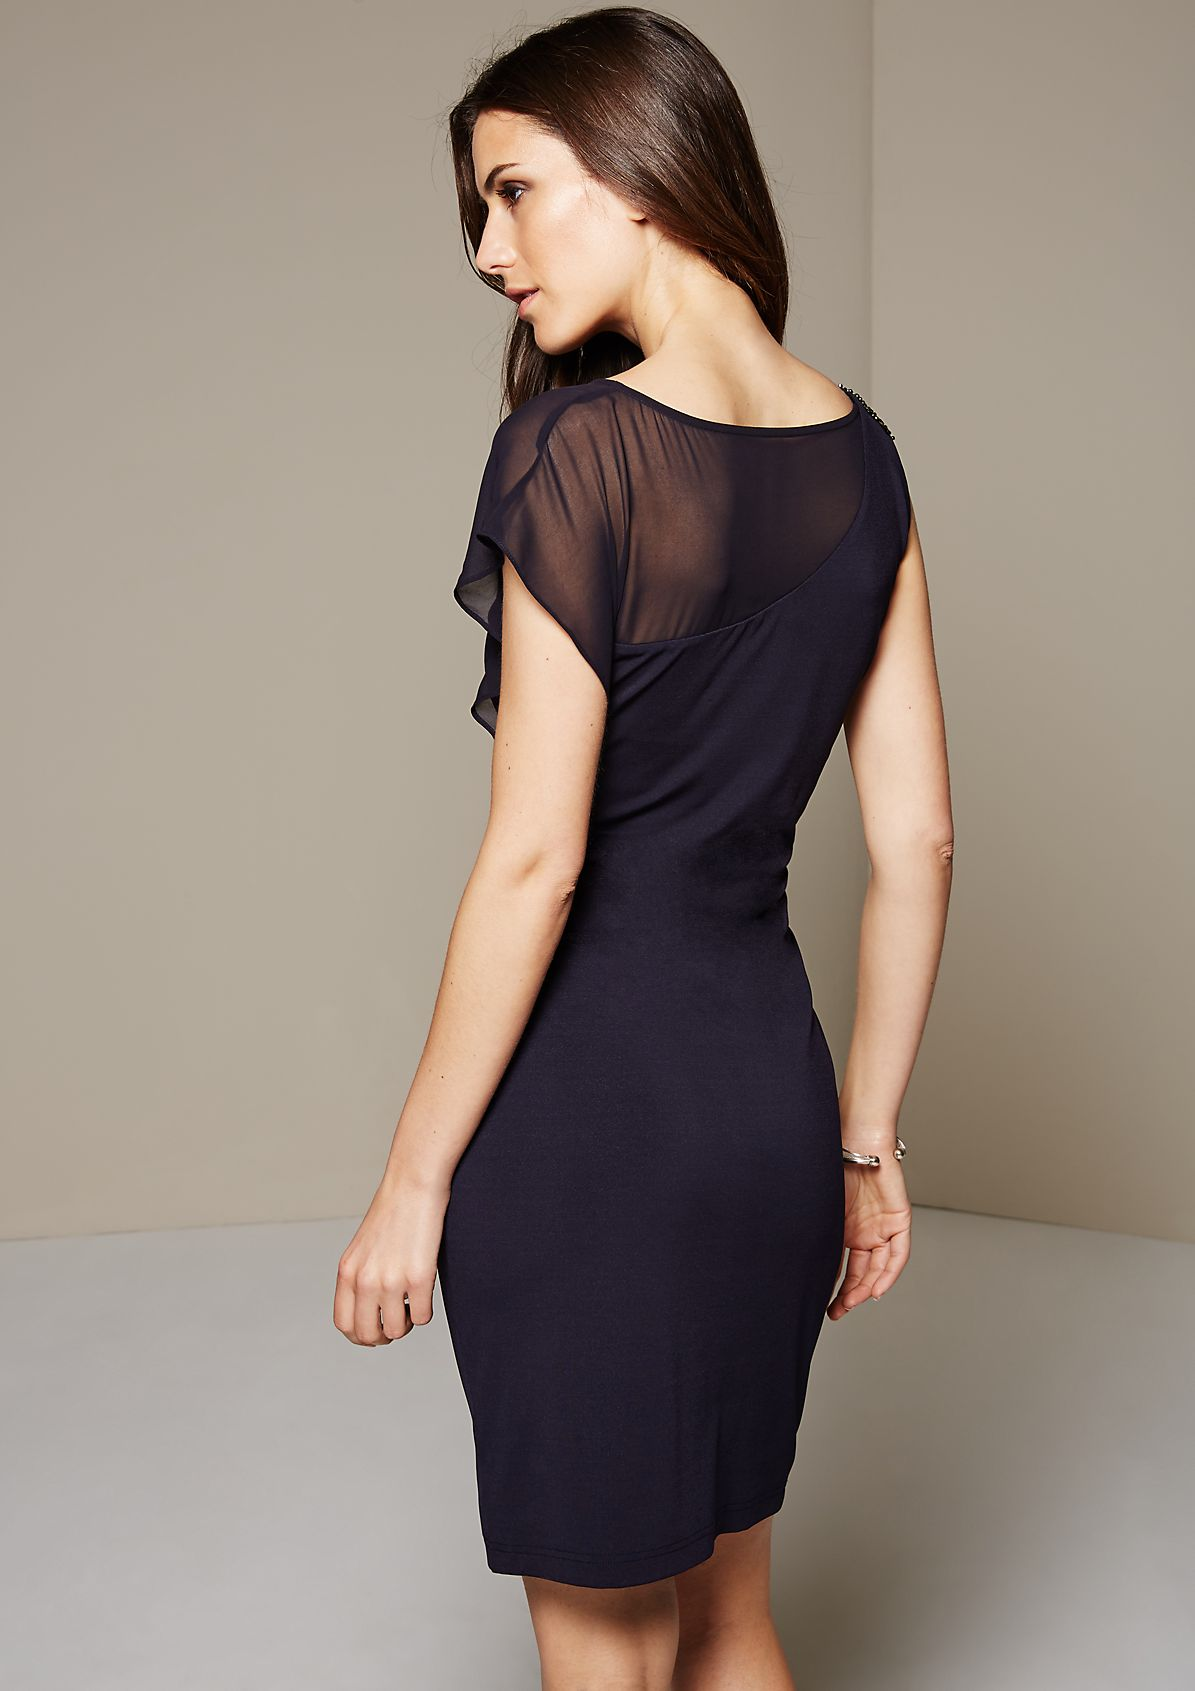 Enchanting evening dress with beautiful details from s.Oliver